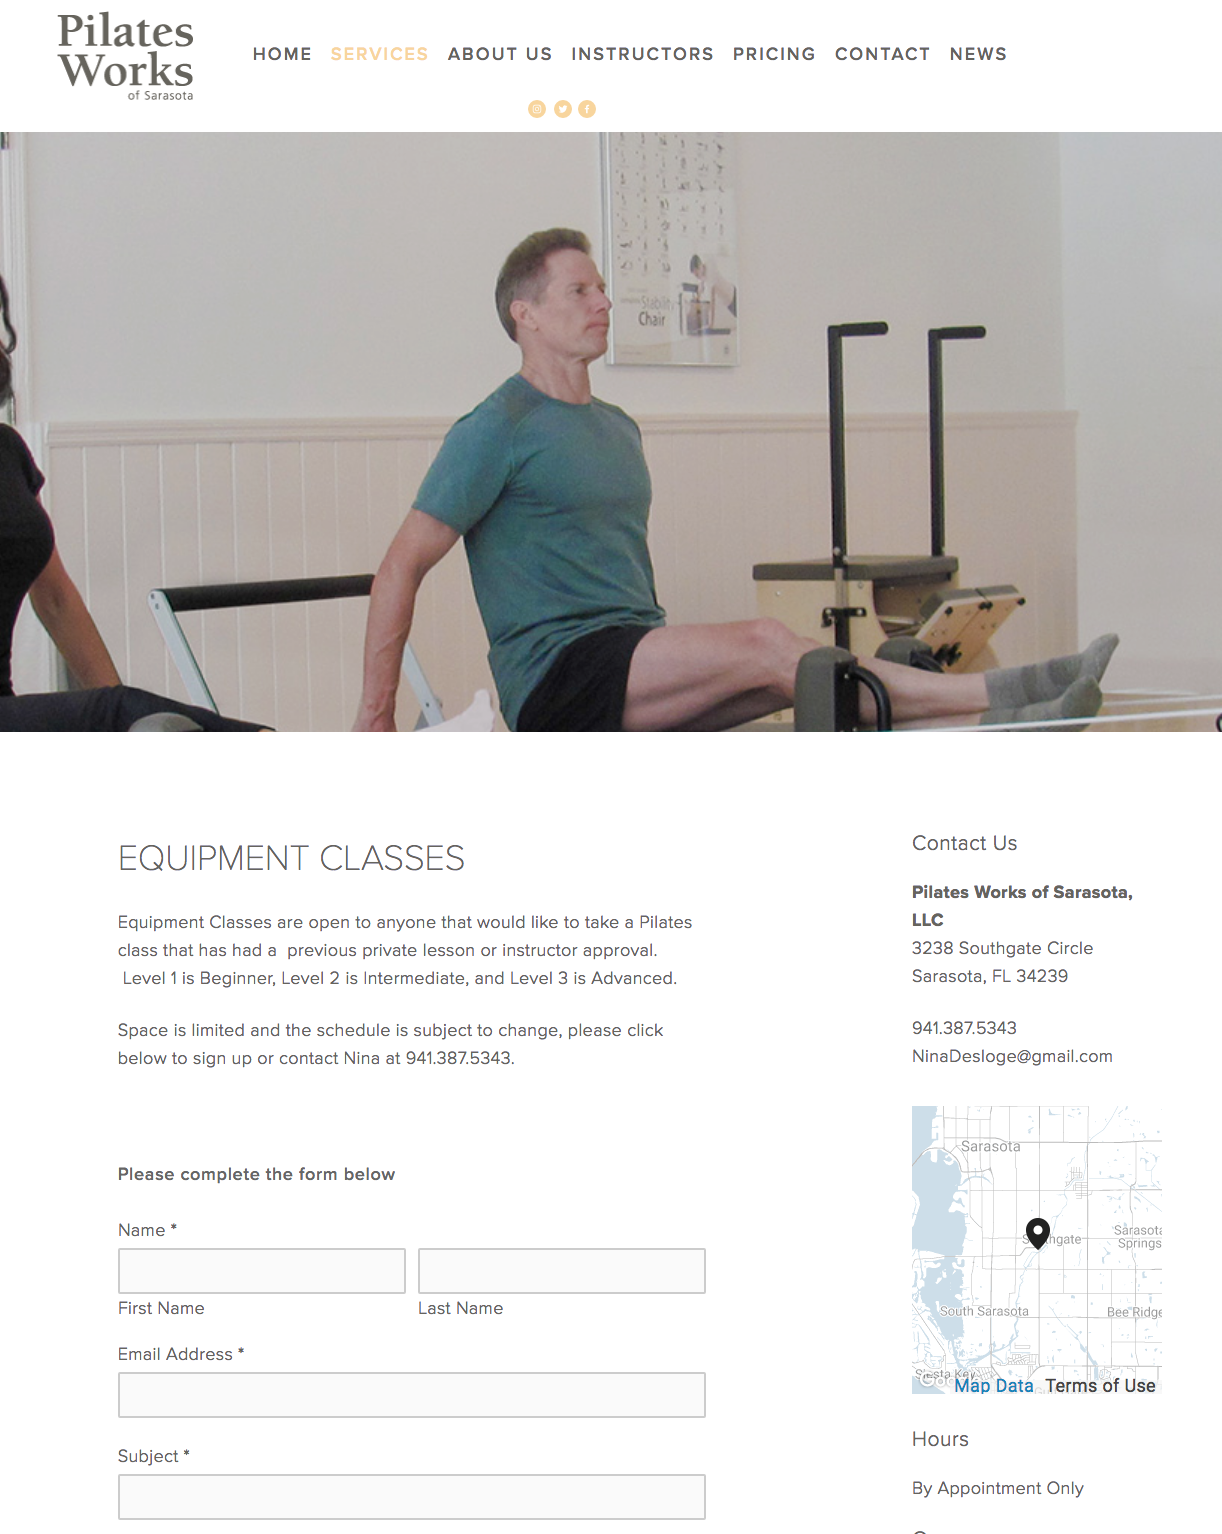 pilates-works-of-sarasota-equipment-class-page.png